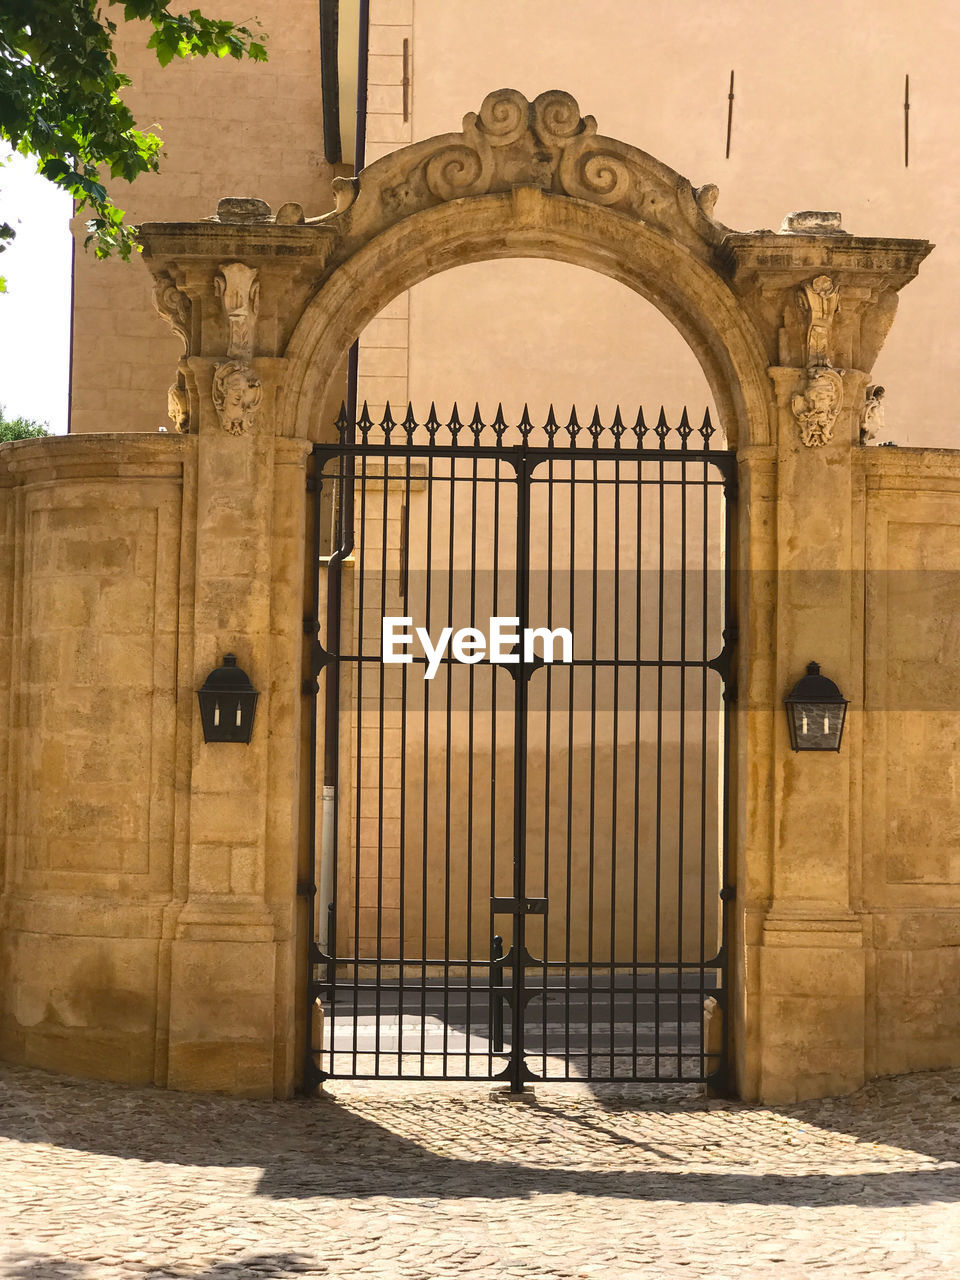 architecture, gate, arch, built structure, building exterior, history, the past, building, entrance, safety, no people, security, day, protection, nature, closed, door, travel destinations, sunlight, fence, wrought iron, outdoors, ornate, iron - metal, architectural column